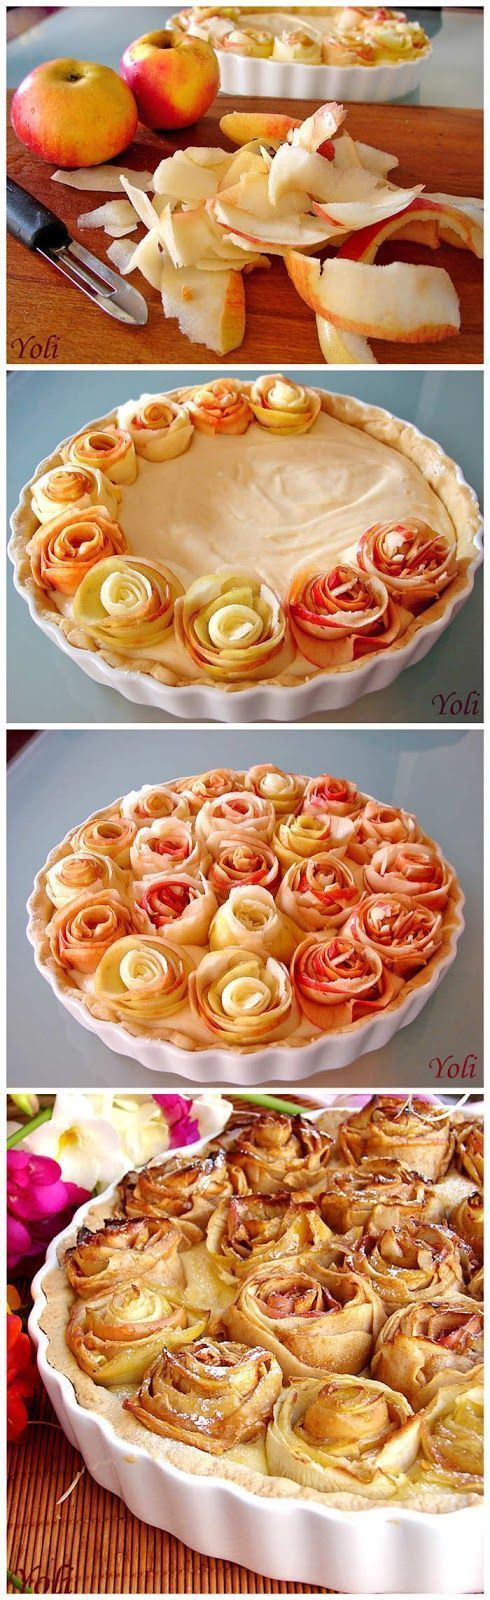 This apple pie has a new look that includes specially crafted apple roses. Using the peals and rolling them up into a tight wrap a sweet apple rose is created.